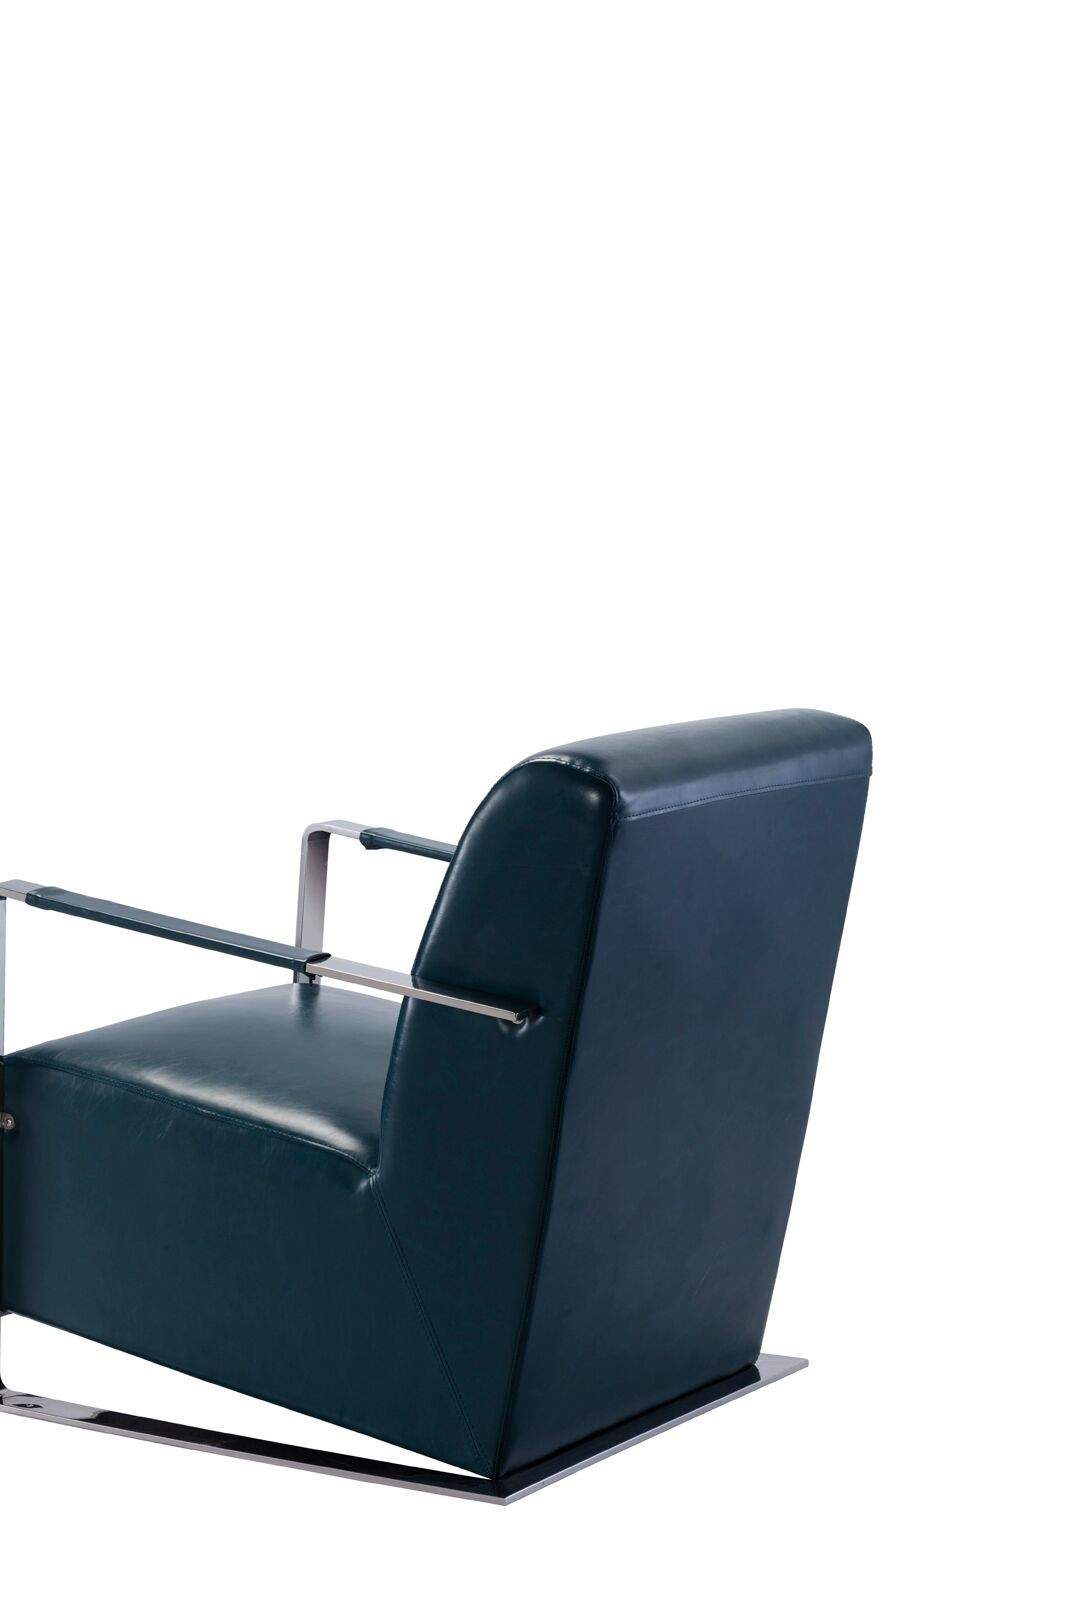 Luxe Modern Teal Leather Armchair